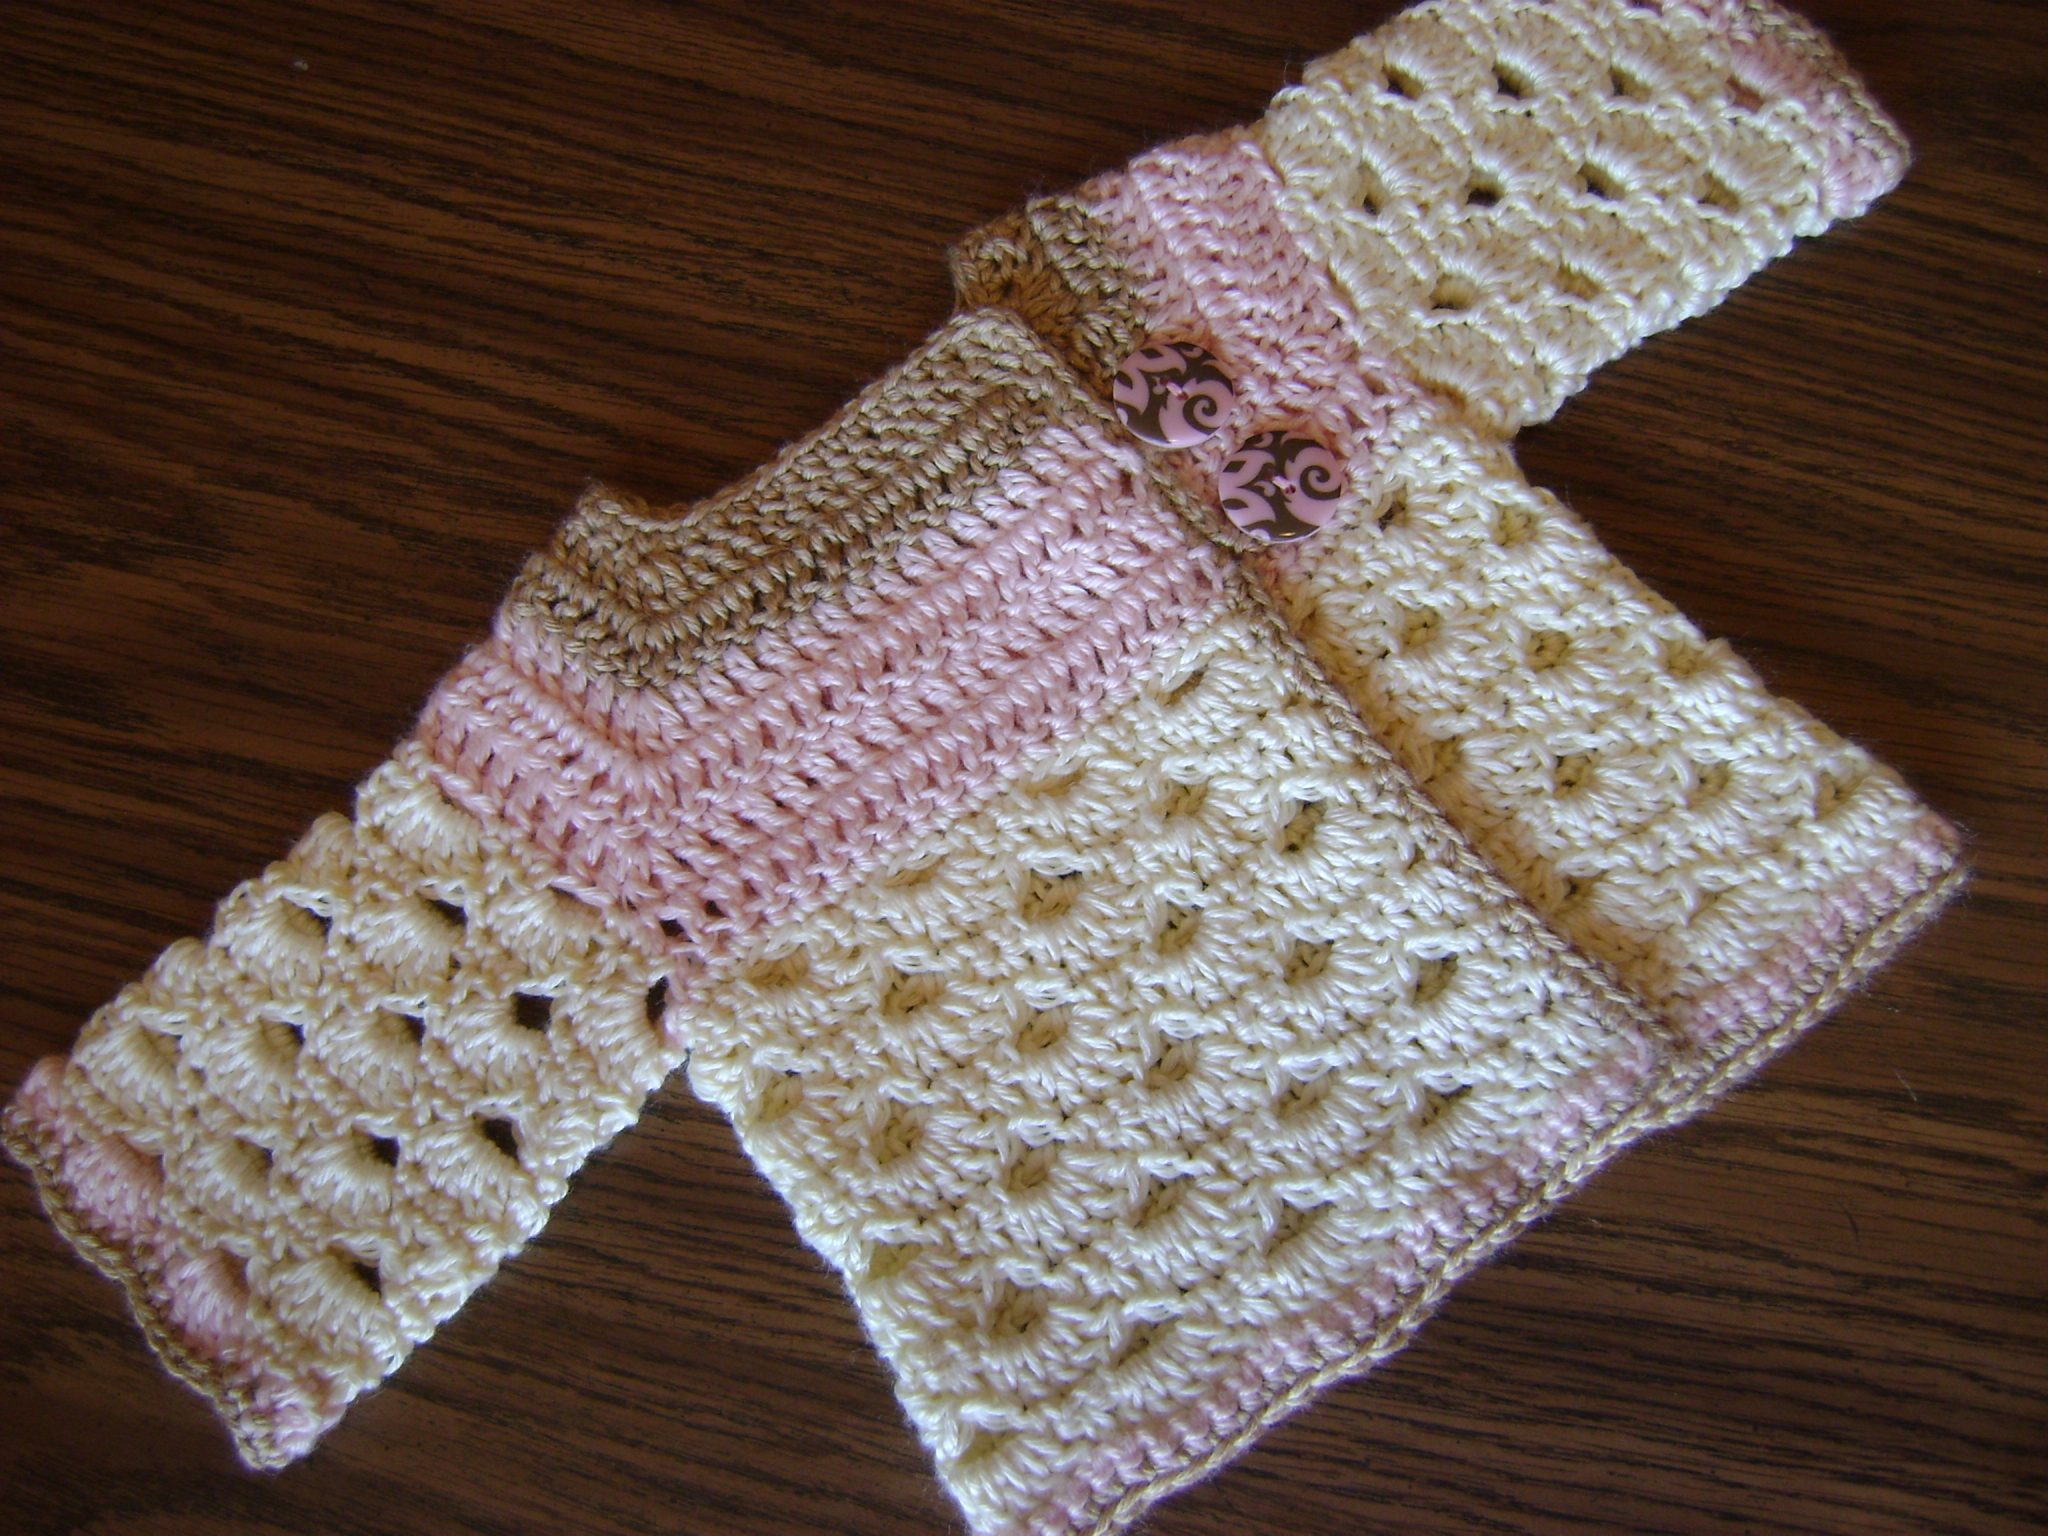 Free Baby Sweater Patterns To Crochet : EASY CROCHETED BABY SWEATER PATTERNS ONLINE - Crochet and ...